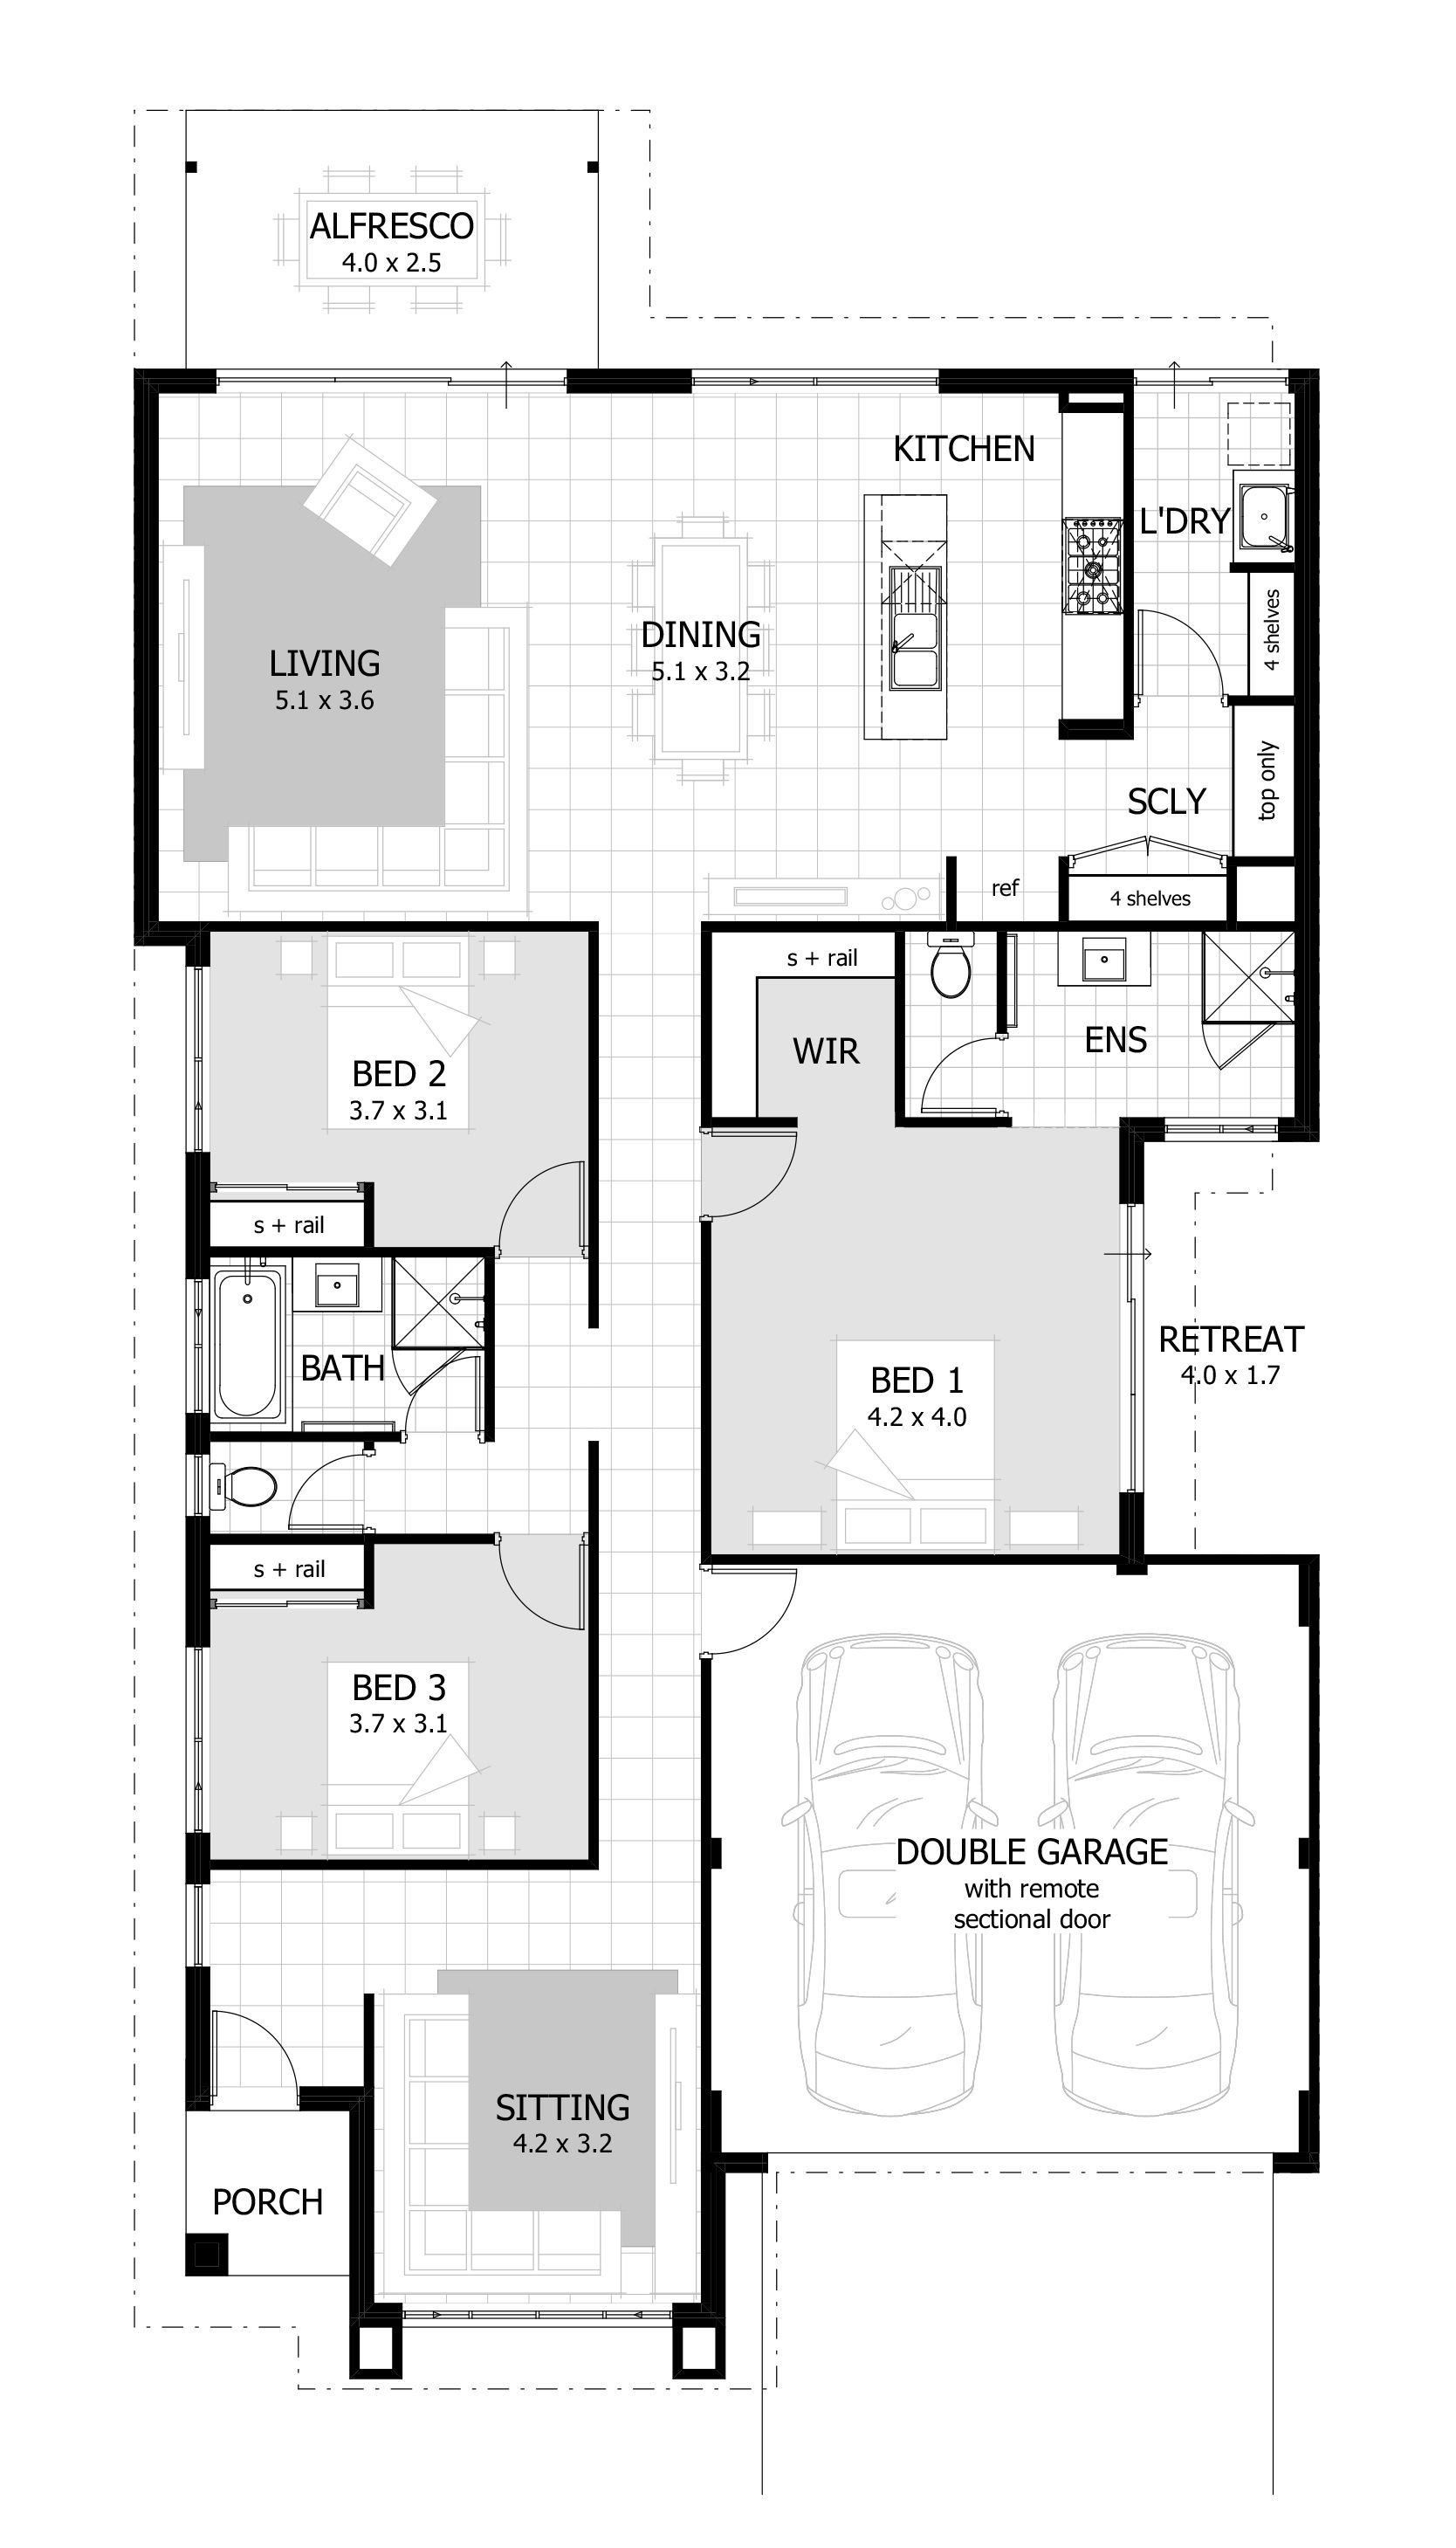 Browse our range of 3 Bedroom House Plans | House plans in ... on l-shaped range home plans, l shaped garage plans, indoor range plans, steel frame homes floor plans,